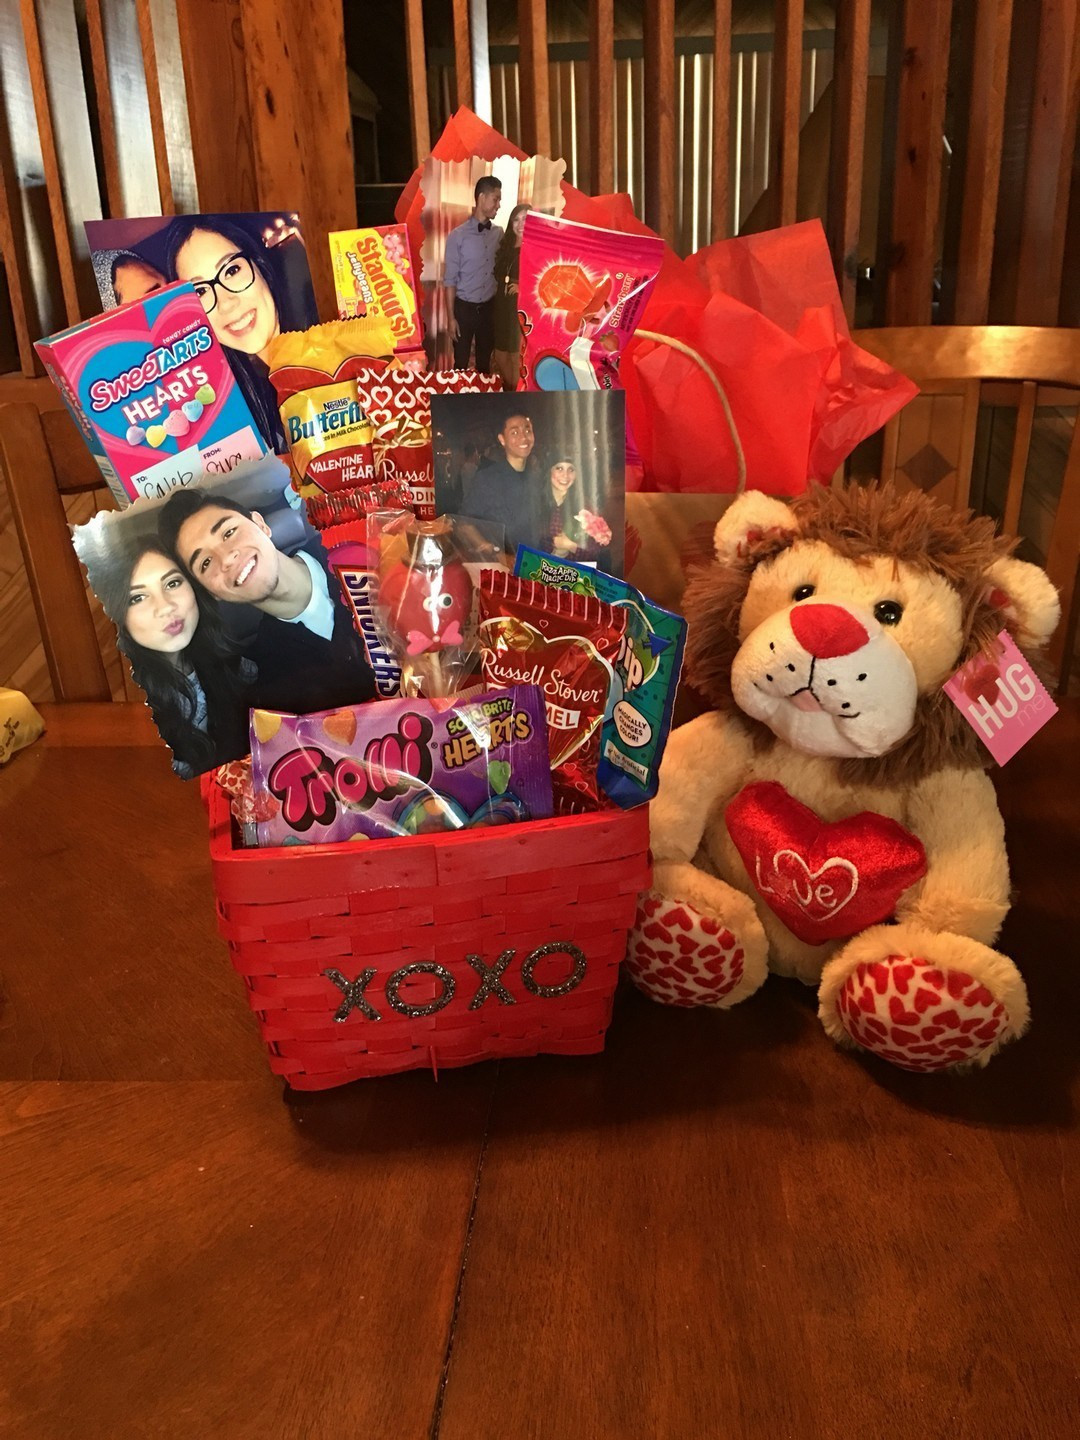 Diy Valentine Gift Ideas For Him  DIY Romantic Valentines Day Gifts For Him echitecture